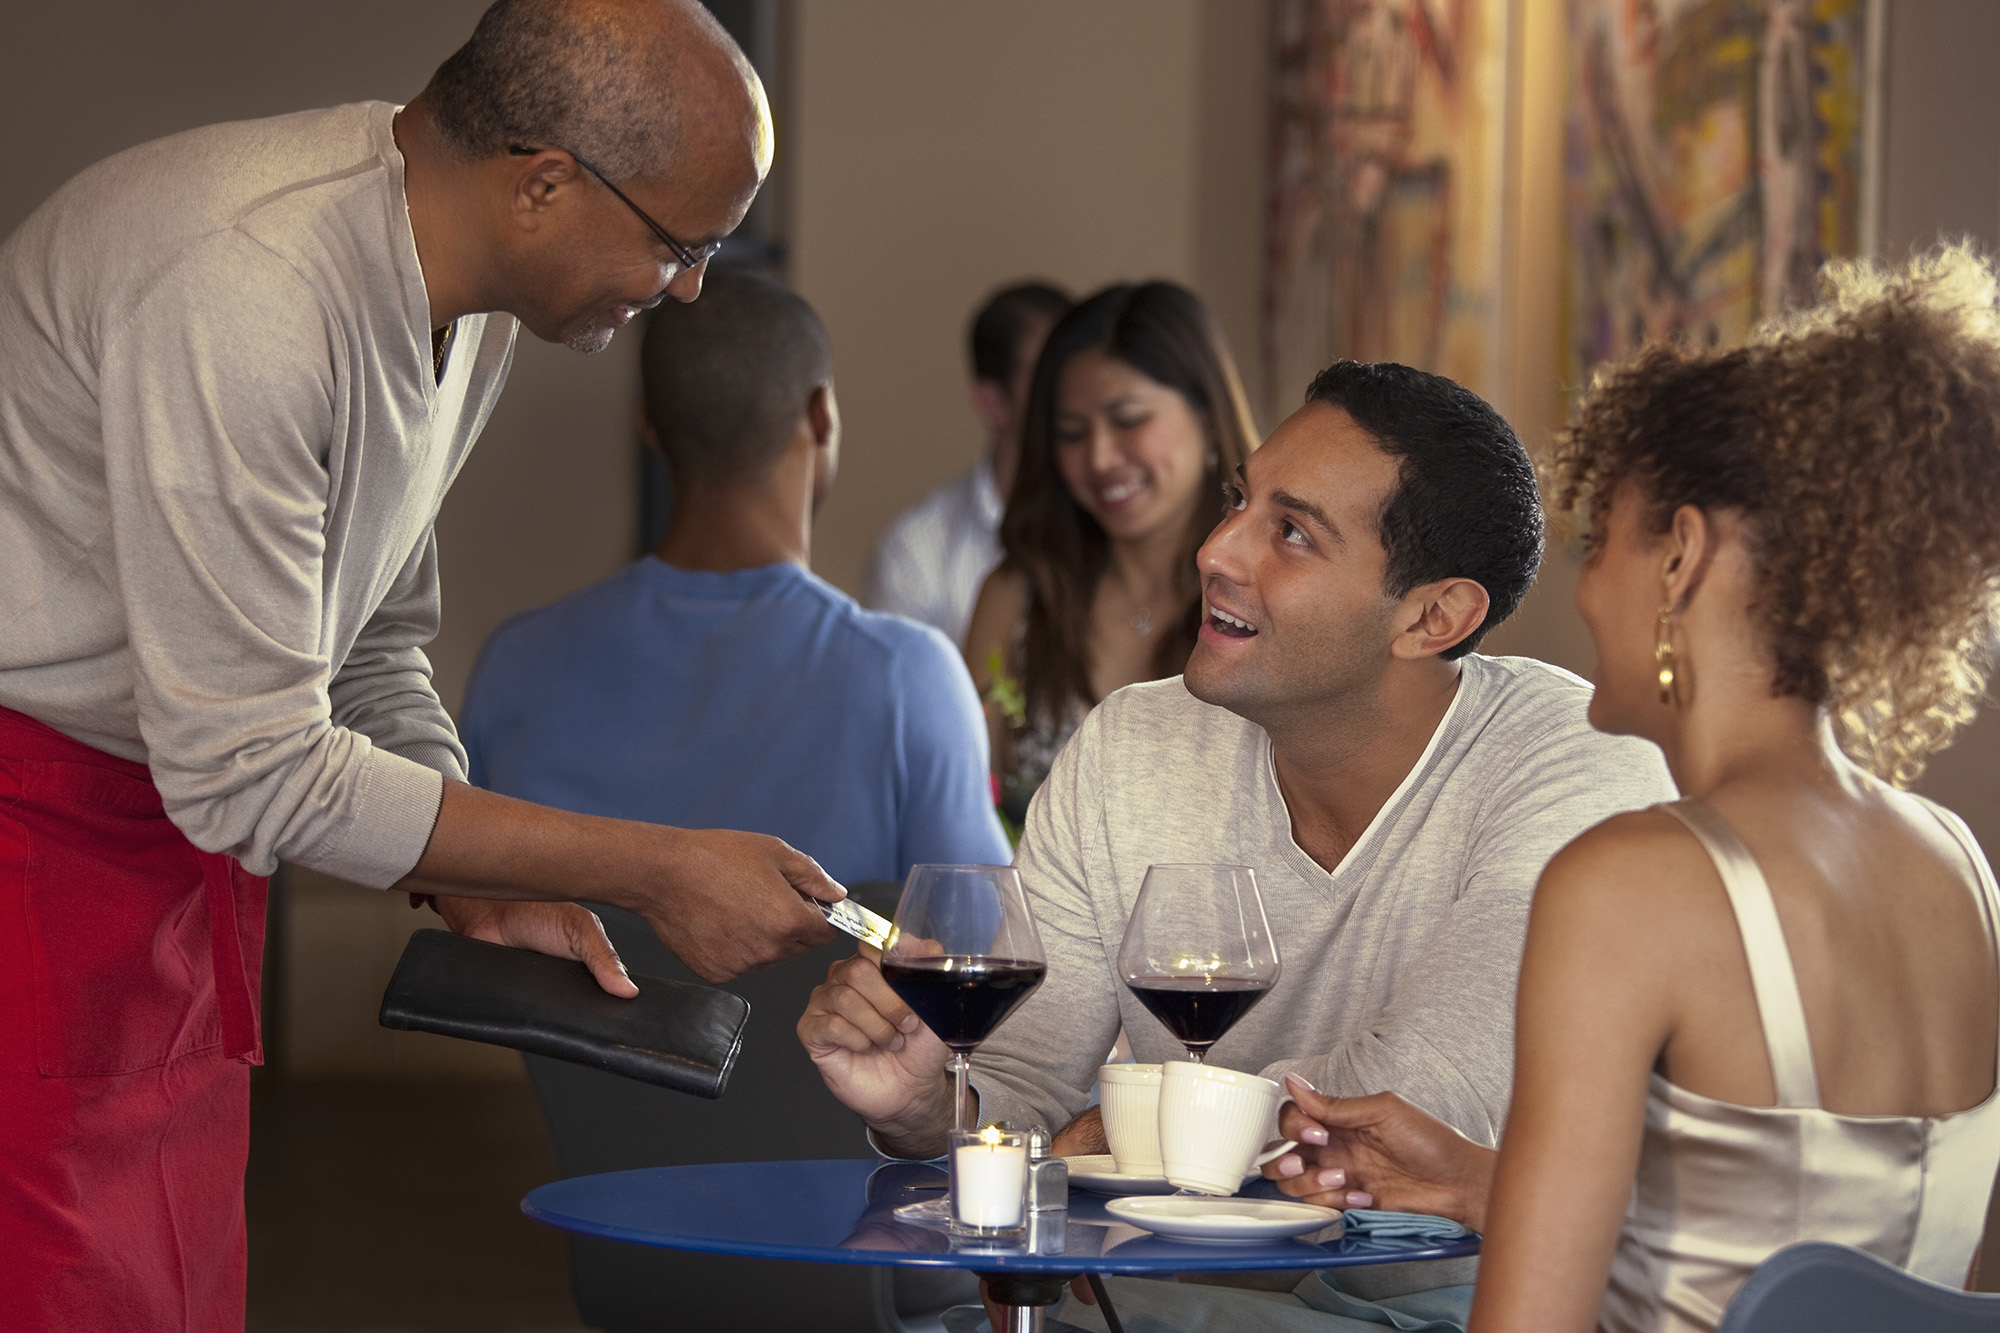 check please paying the bill in 6 awkward situations